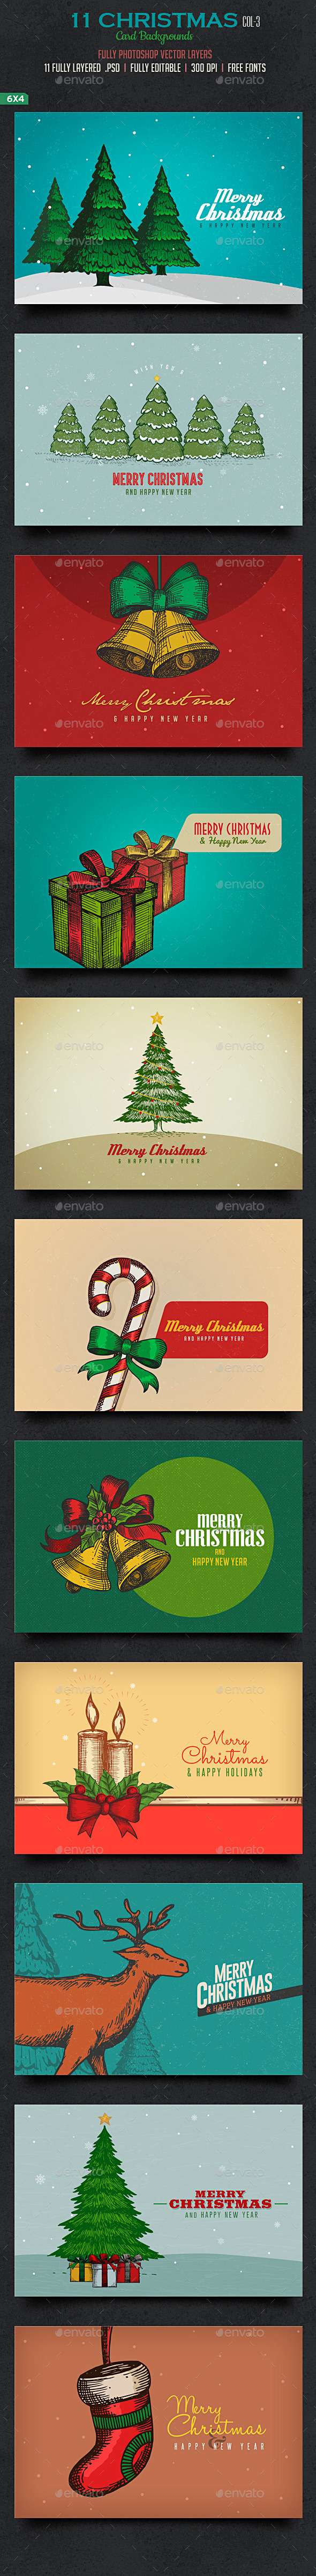 Christmas Card/Backgrounds -Col3 - Backgrounds Graphics